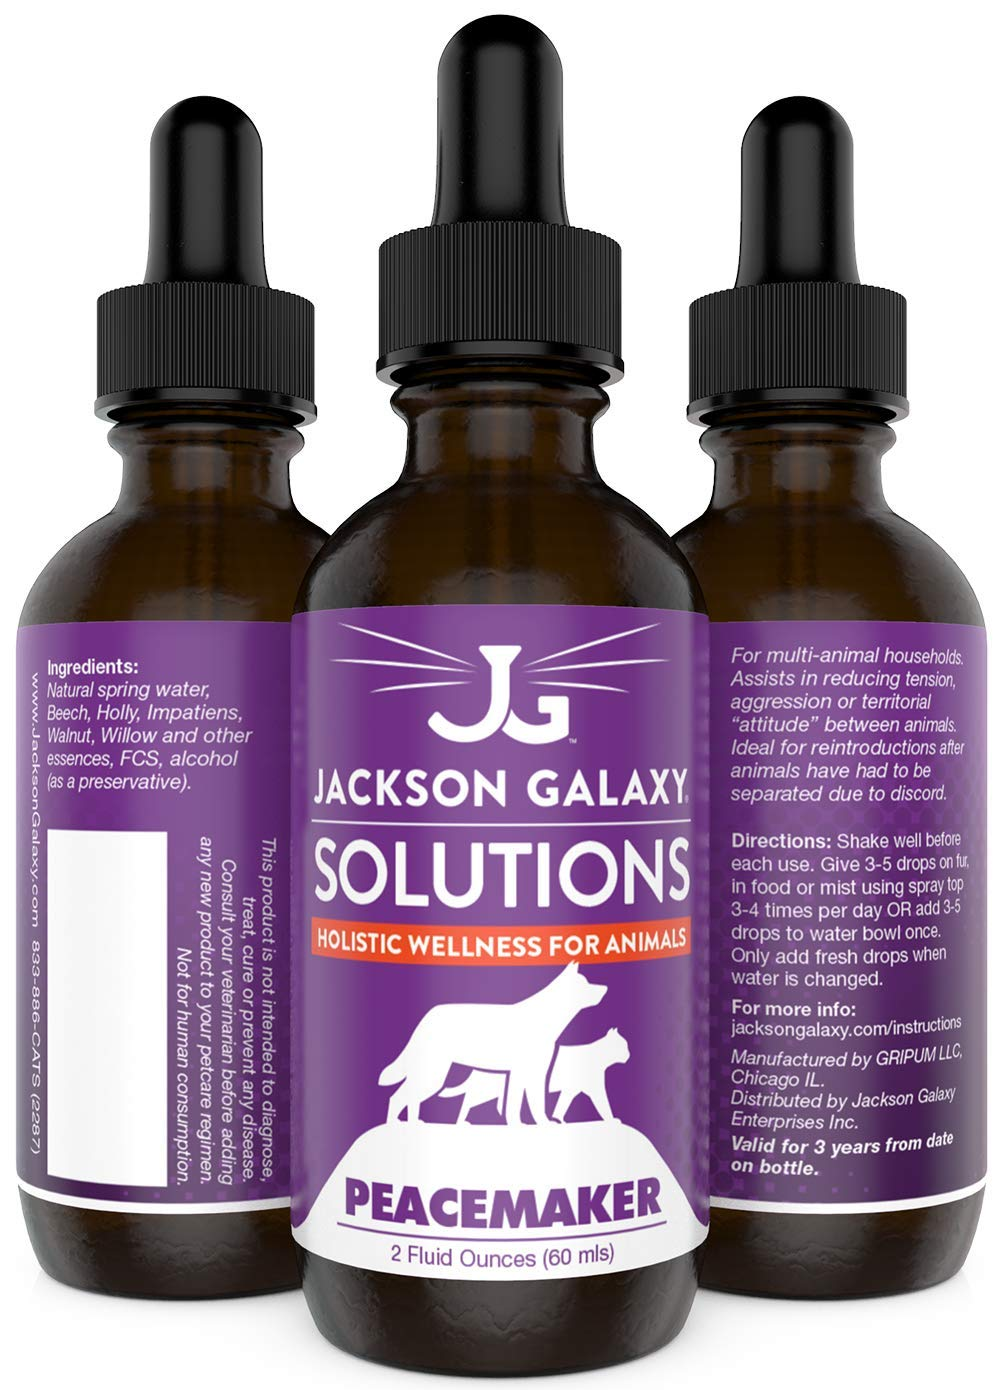 Jackson Galaxy: Peacemaker (2 oz.) - Pet Solution - Promotes Sense of Community - Can Reduce Aggression, Tension, Jealousy - All-Natural Formula - Reiki Energy by Jackson Galaxy